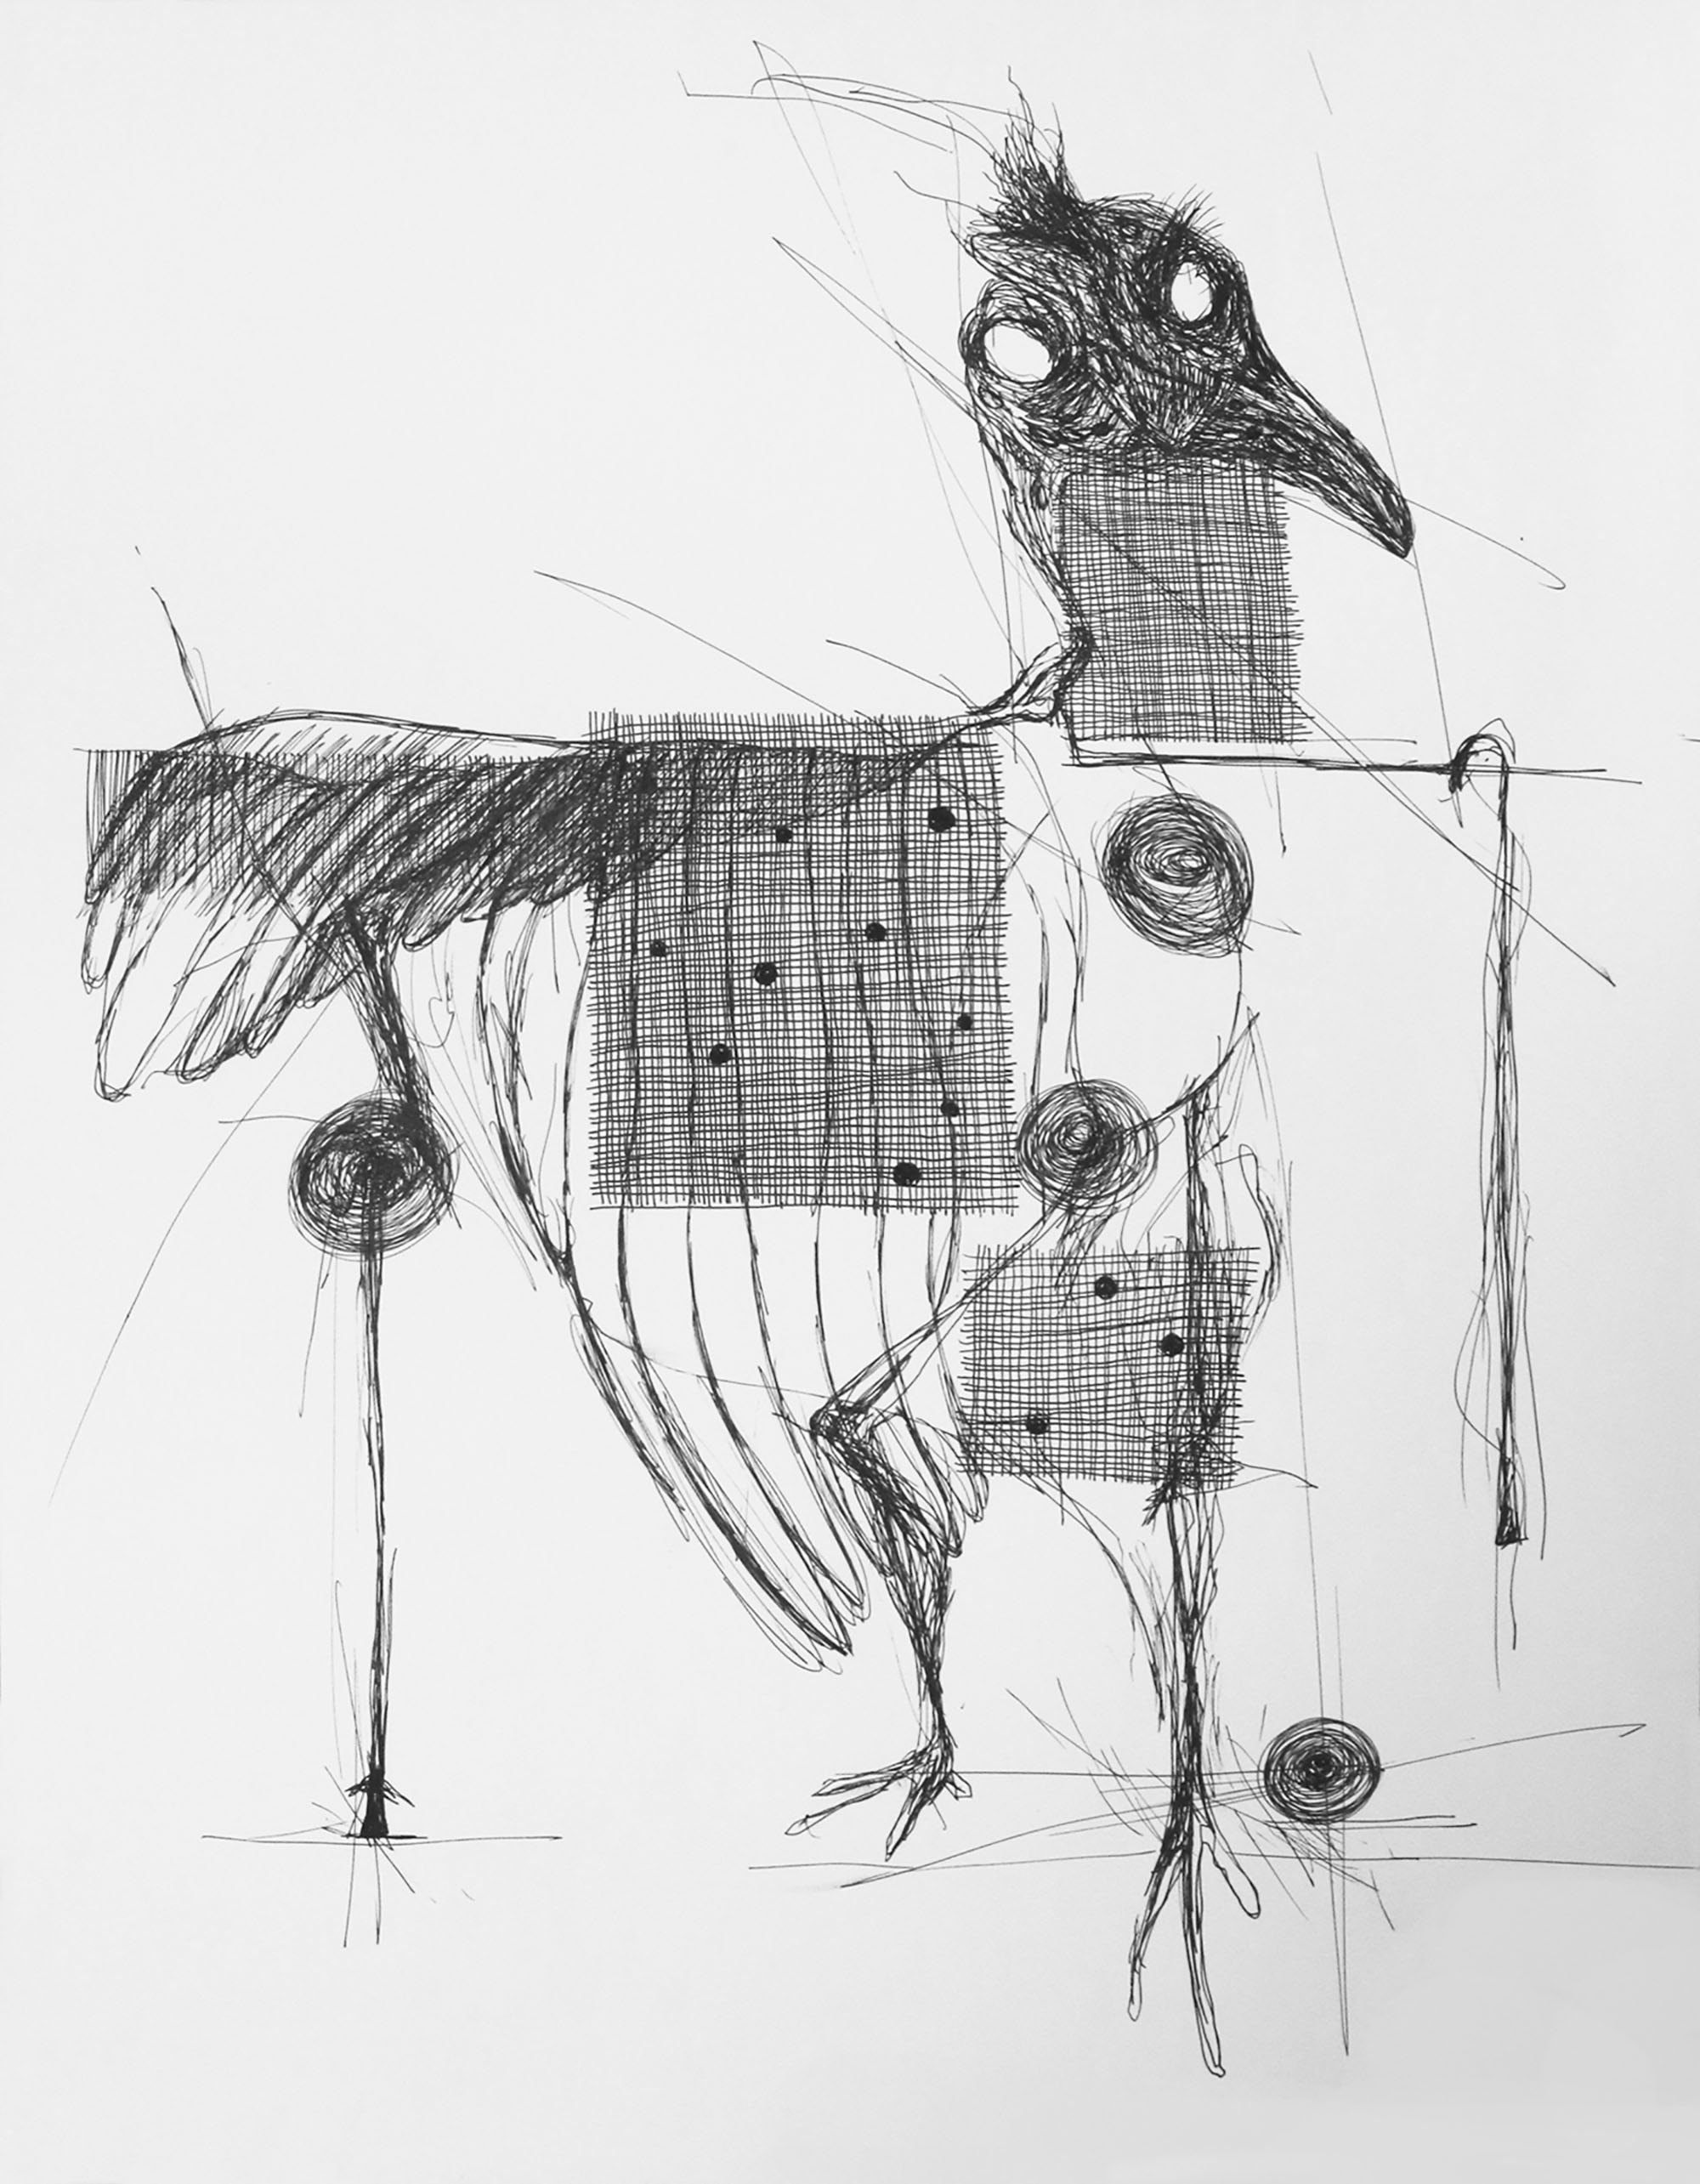 Black and white abstracted line drawing featuring bird forms, spirals and crosshatched grids.